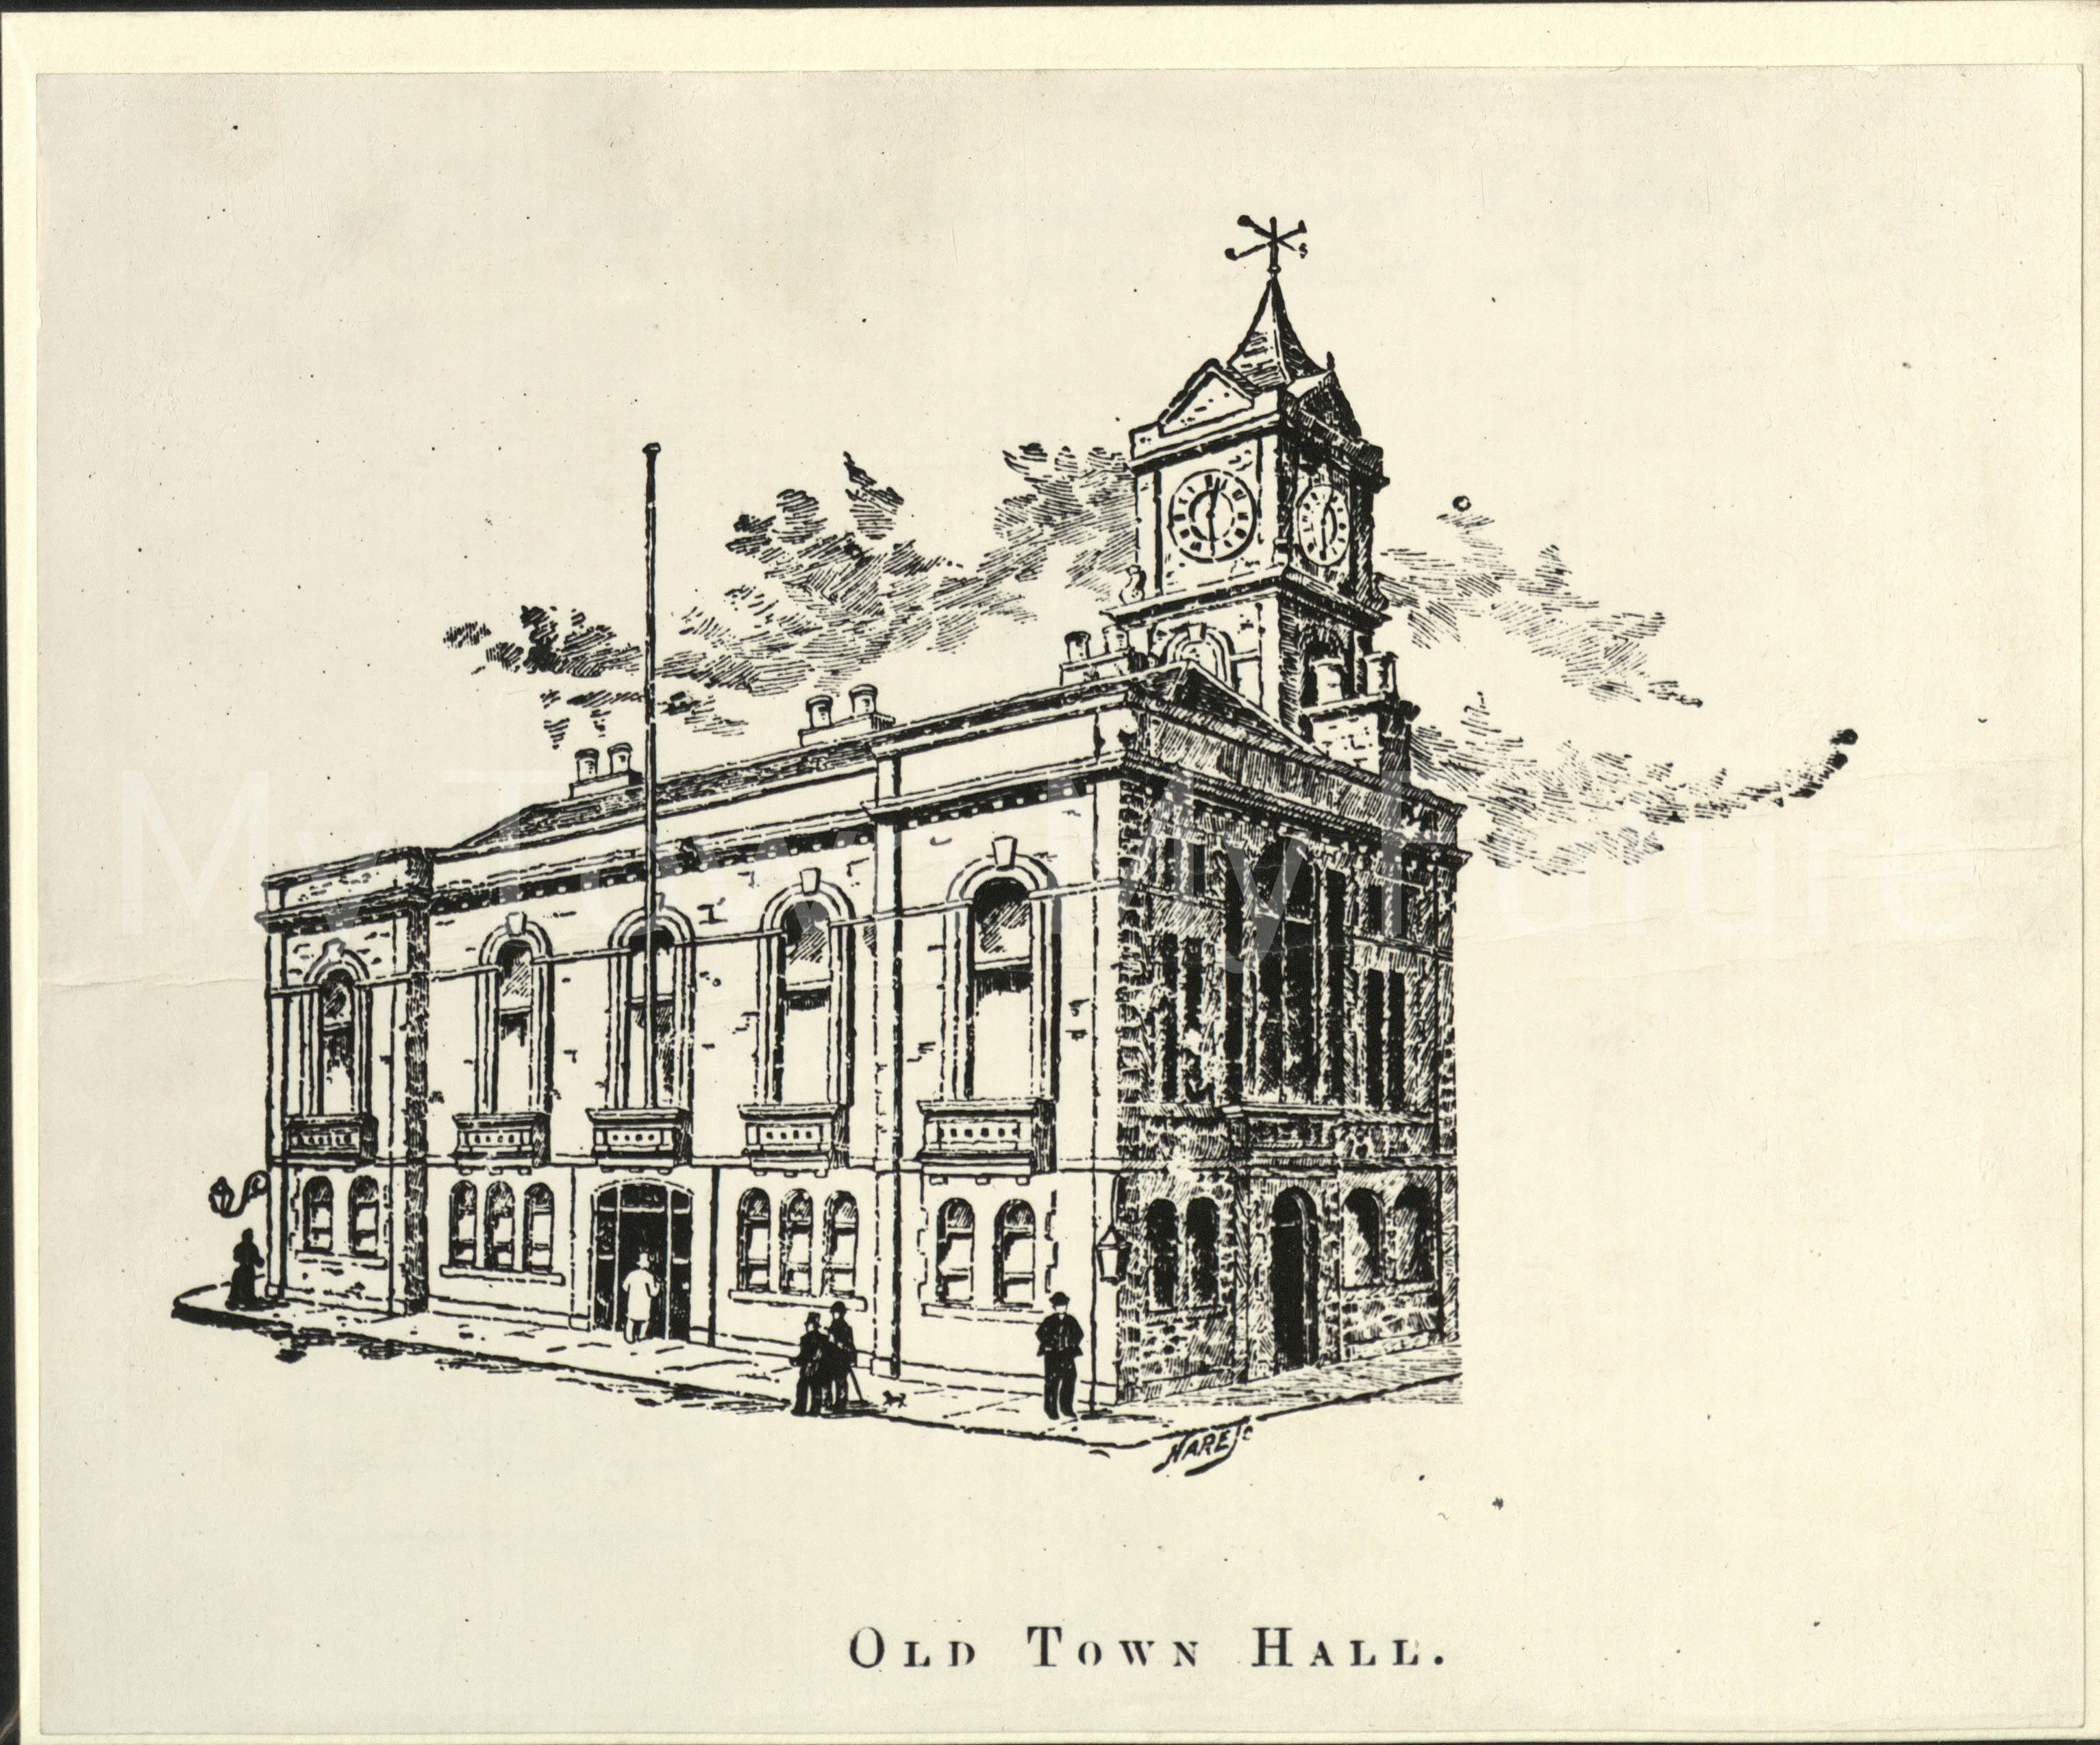 Old Town Hall (Building completed September 1846) - Sketch